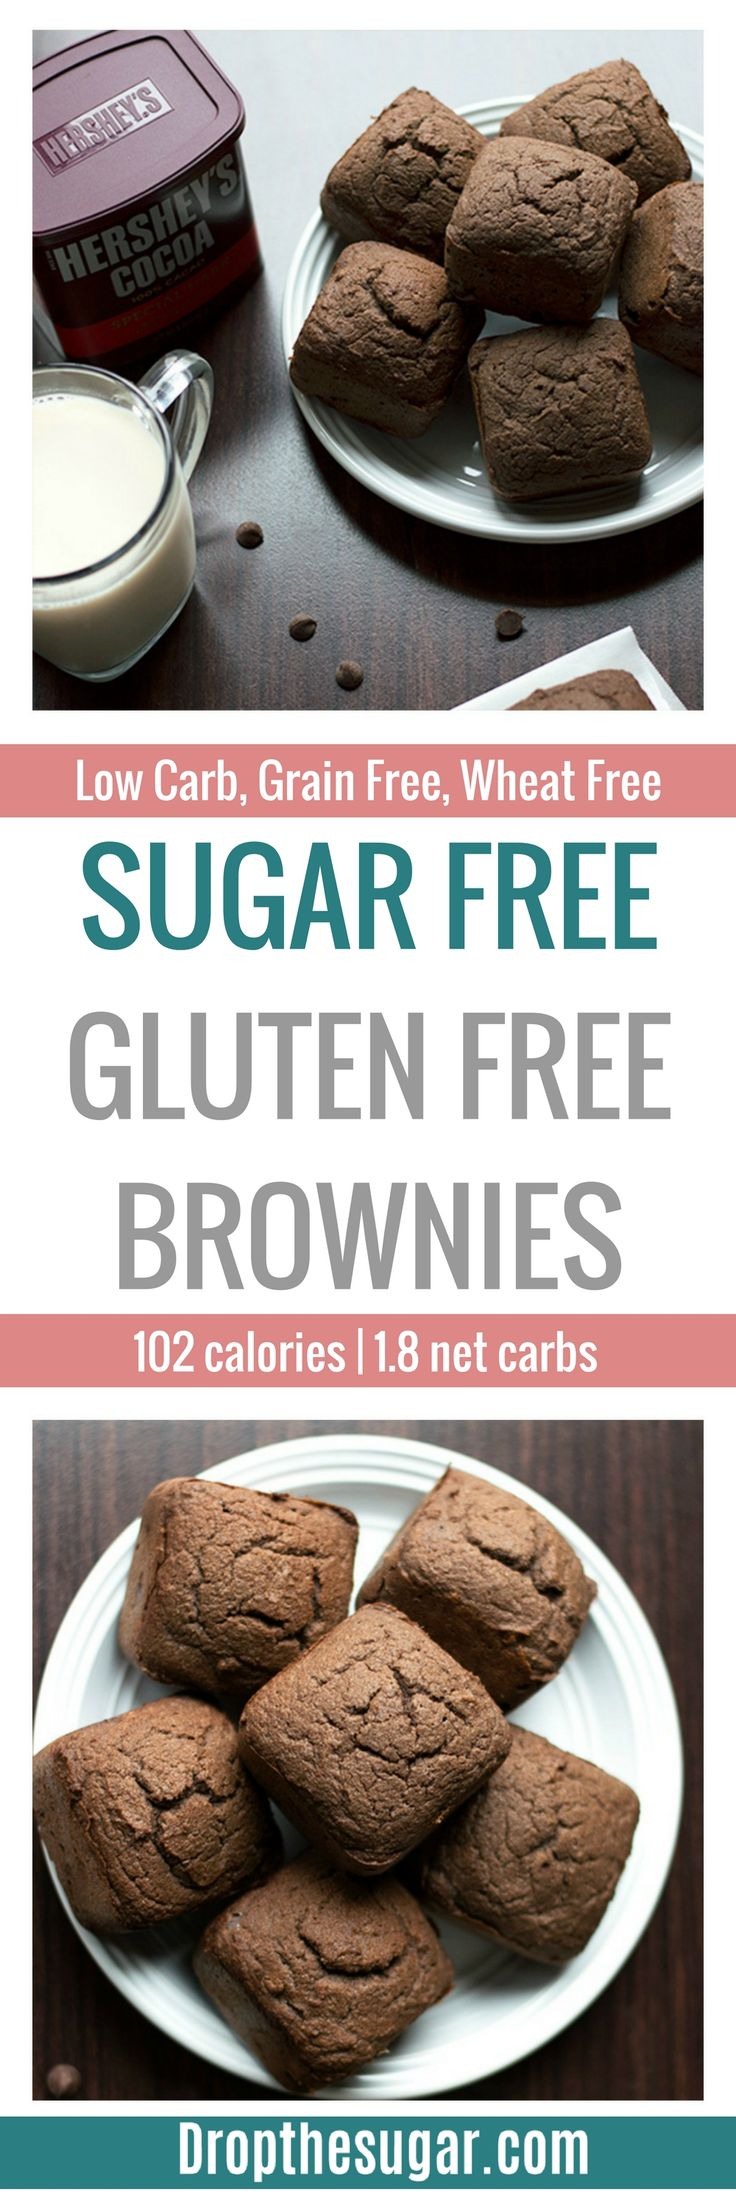 Deser williams pictures to pin on pinterest - Sugar Free Gluten Free Brownies